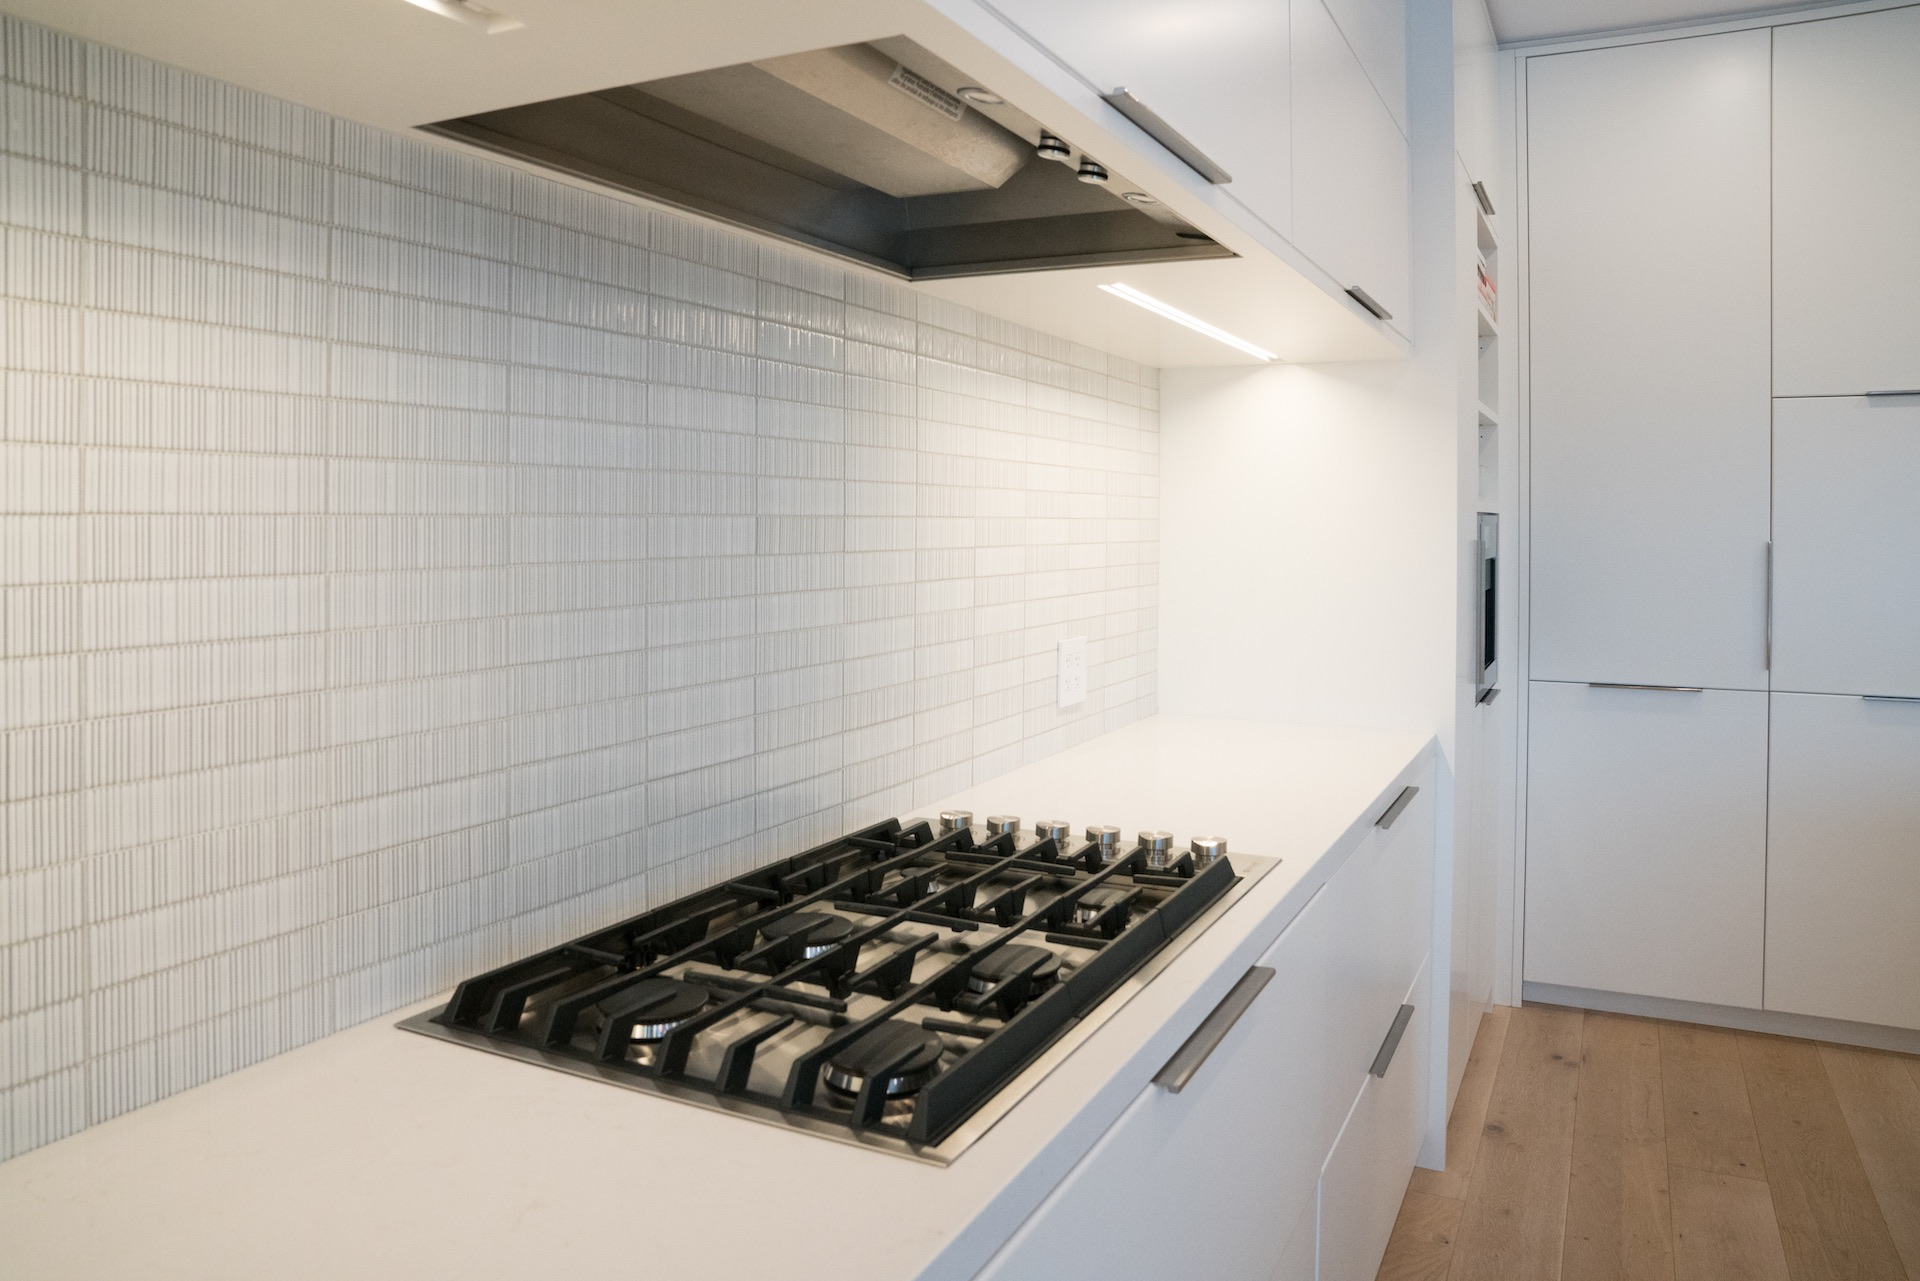 white counter with black grill stove and hood fan